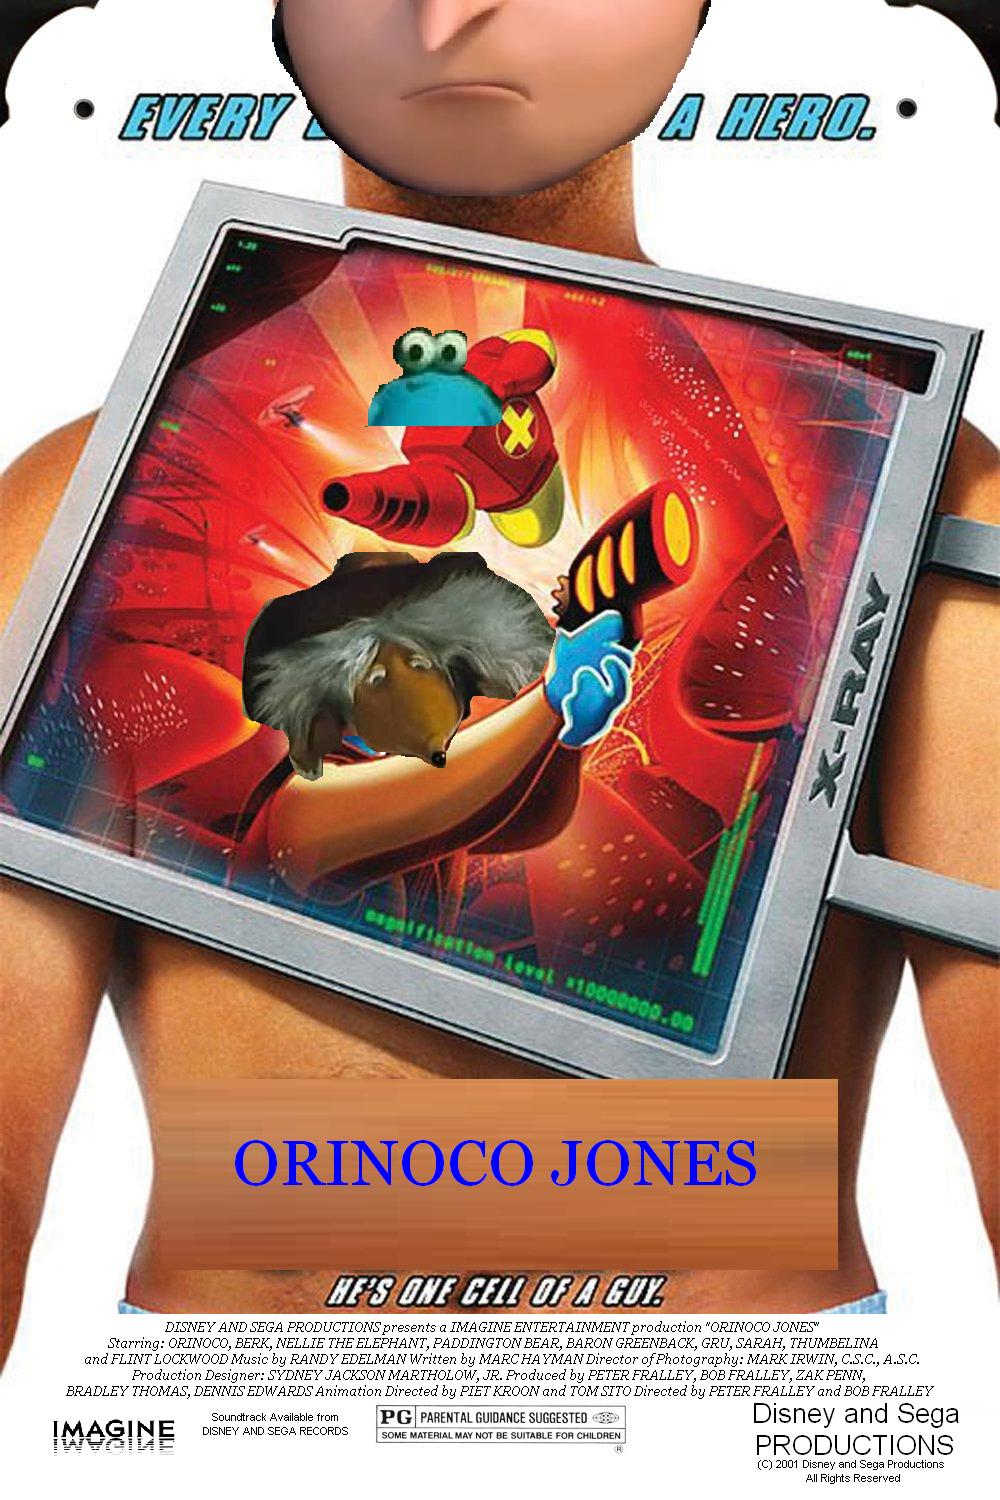 Orinoco Jones